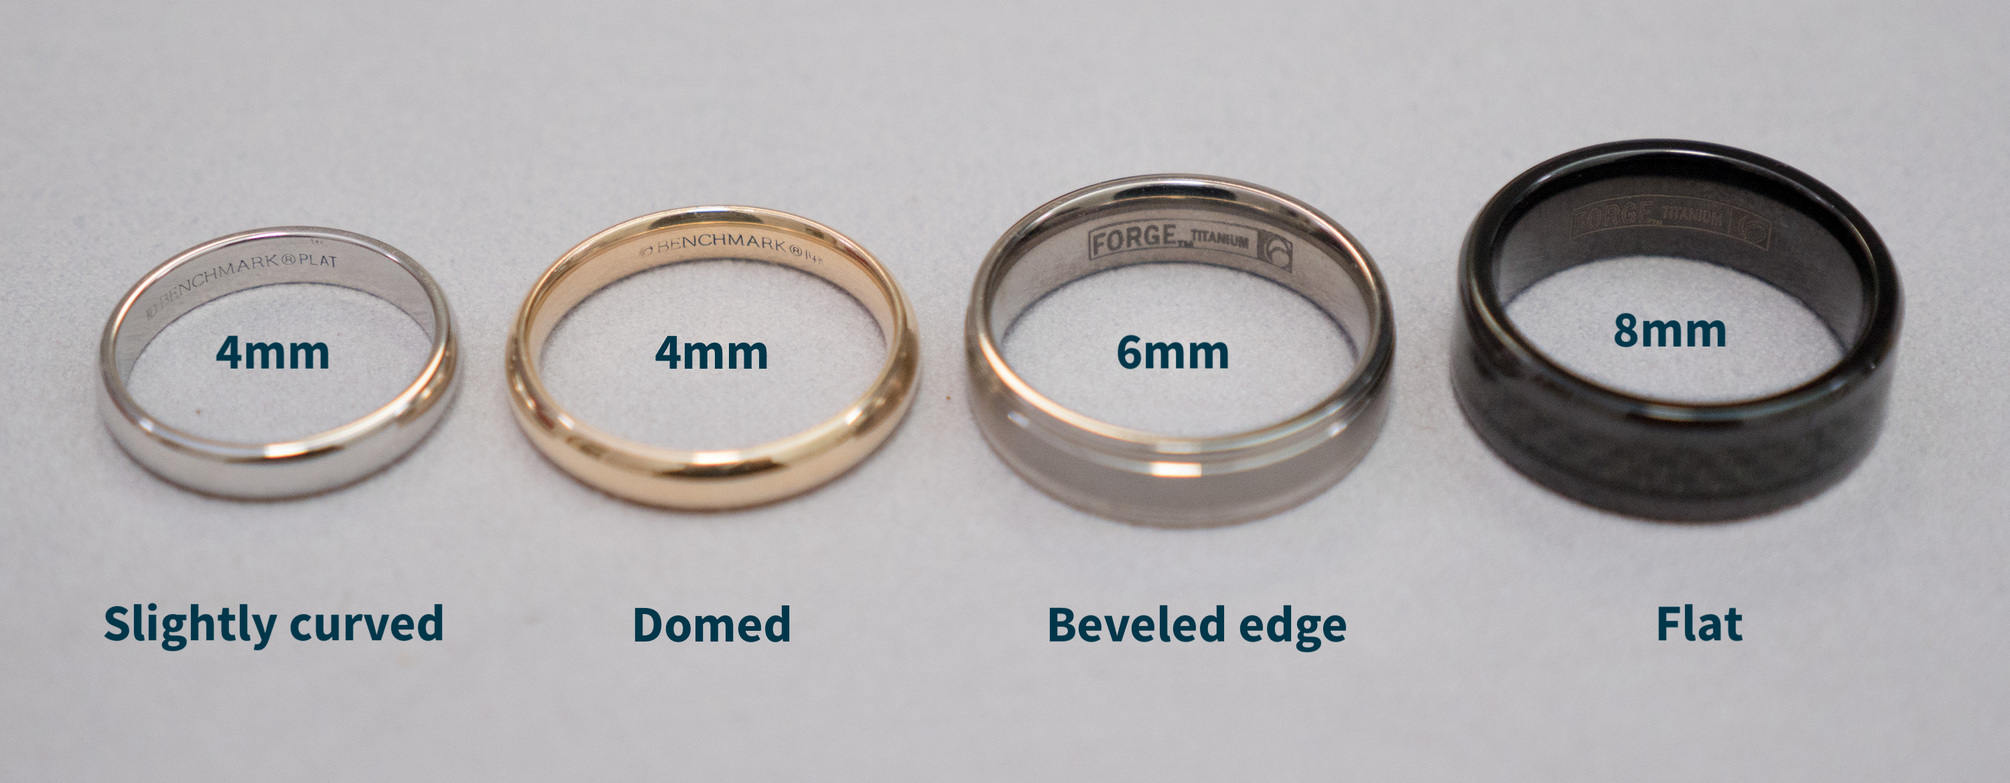 How To Choose A Men S Wedding Ring In Depth Guide